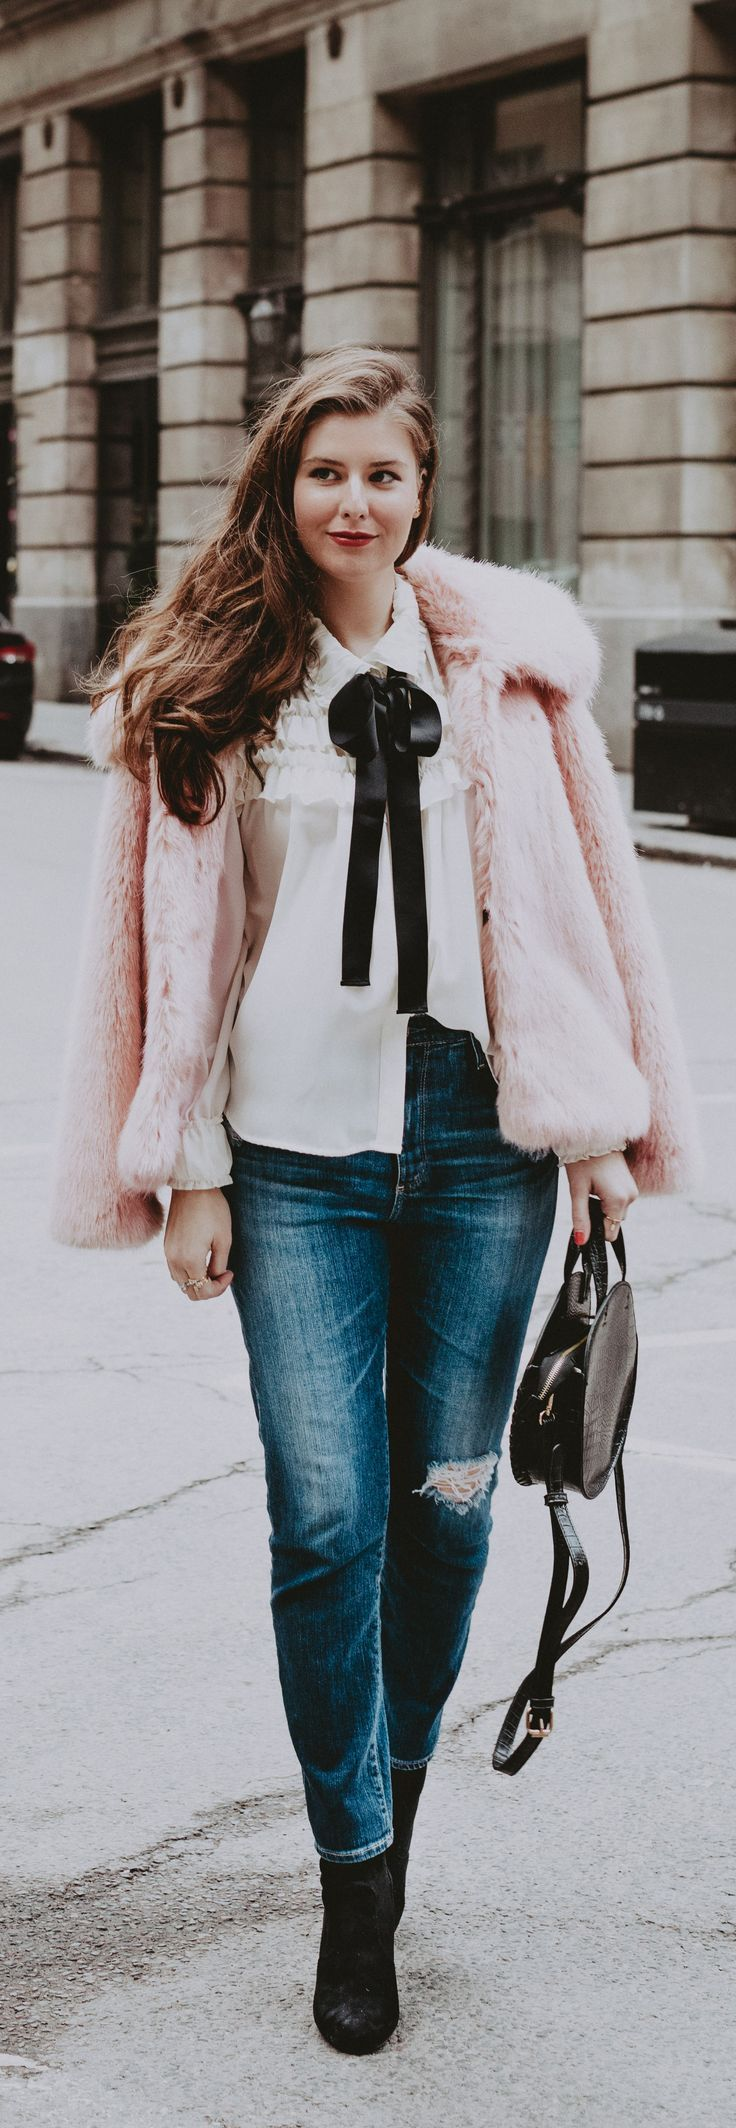 Adore this pink fur coat, white blouse with bow - winter style, street style